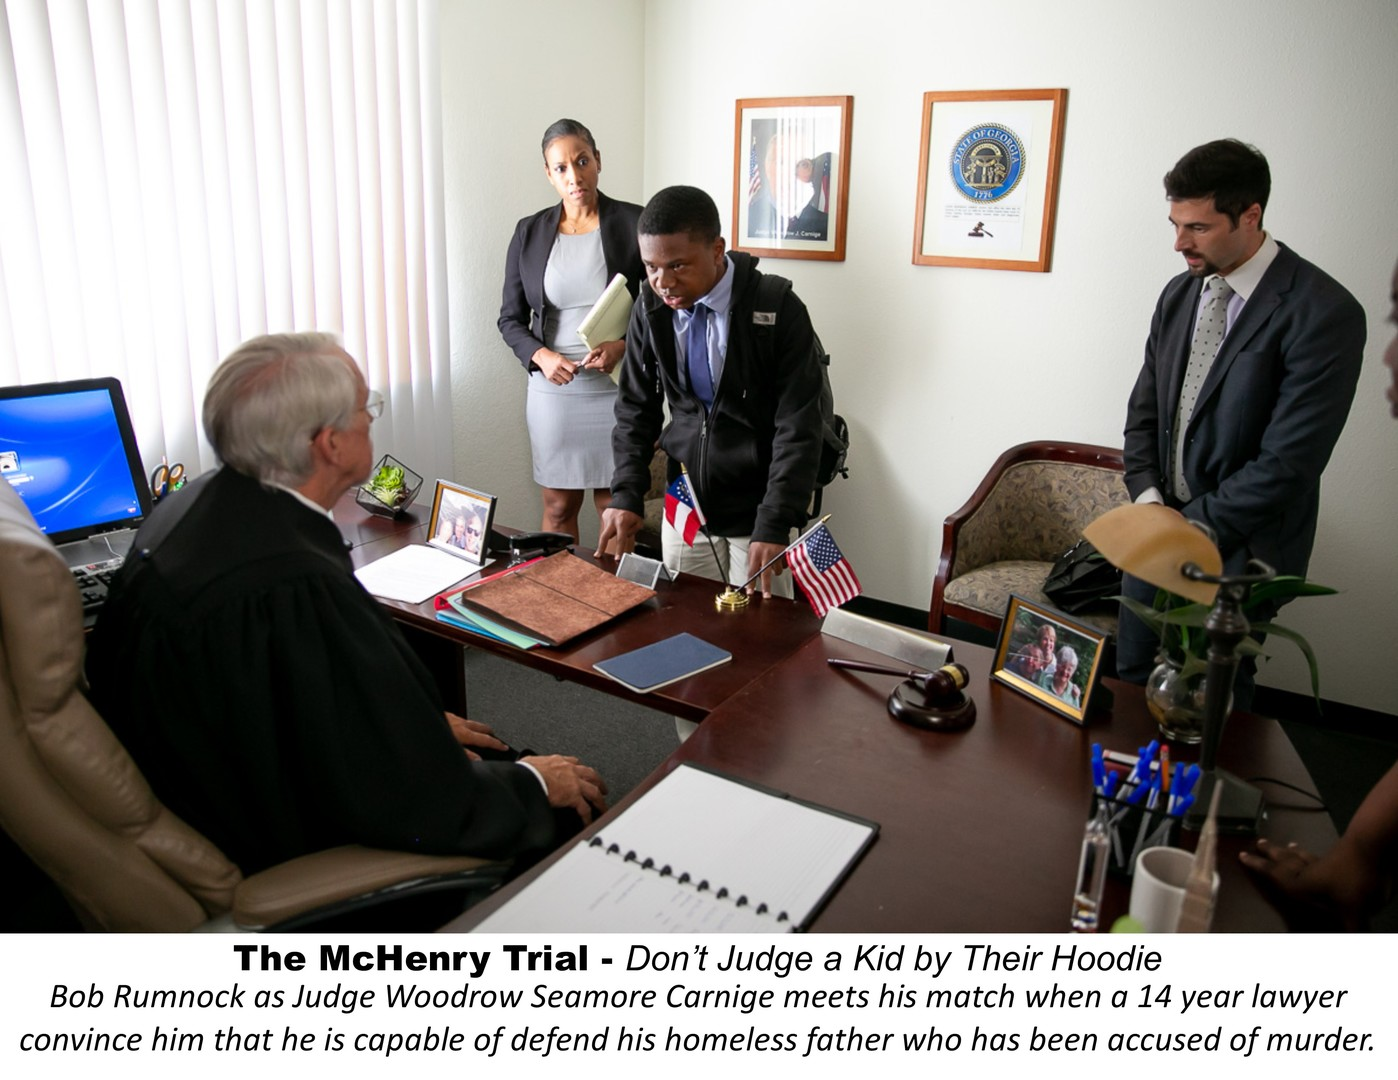 The-McHenry-Trial-–-Dont-Judge-a-Kid-by-Their-Hoodie-Pictures_McHenry_Trial_JUDGE_CARNIGE_